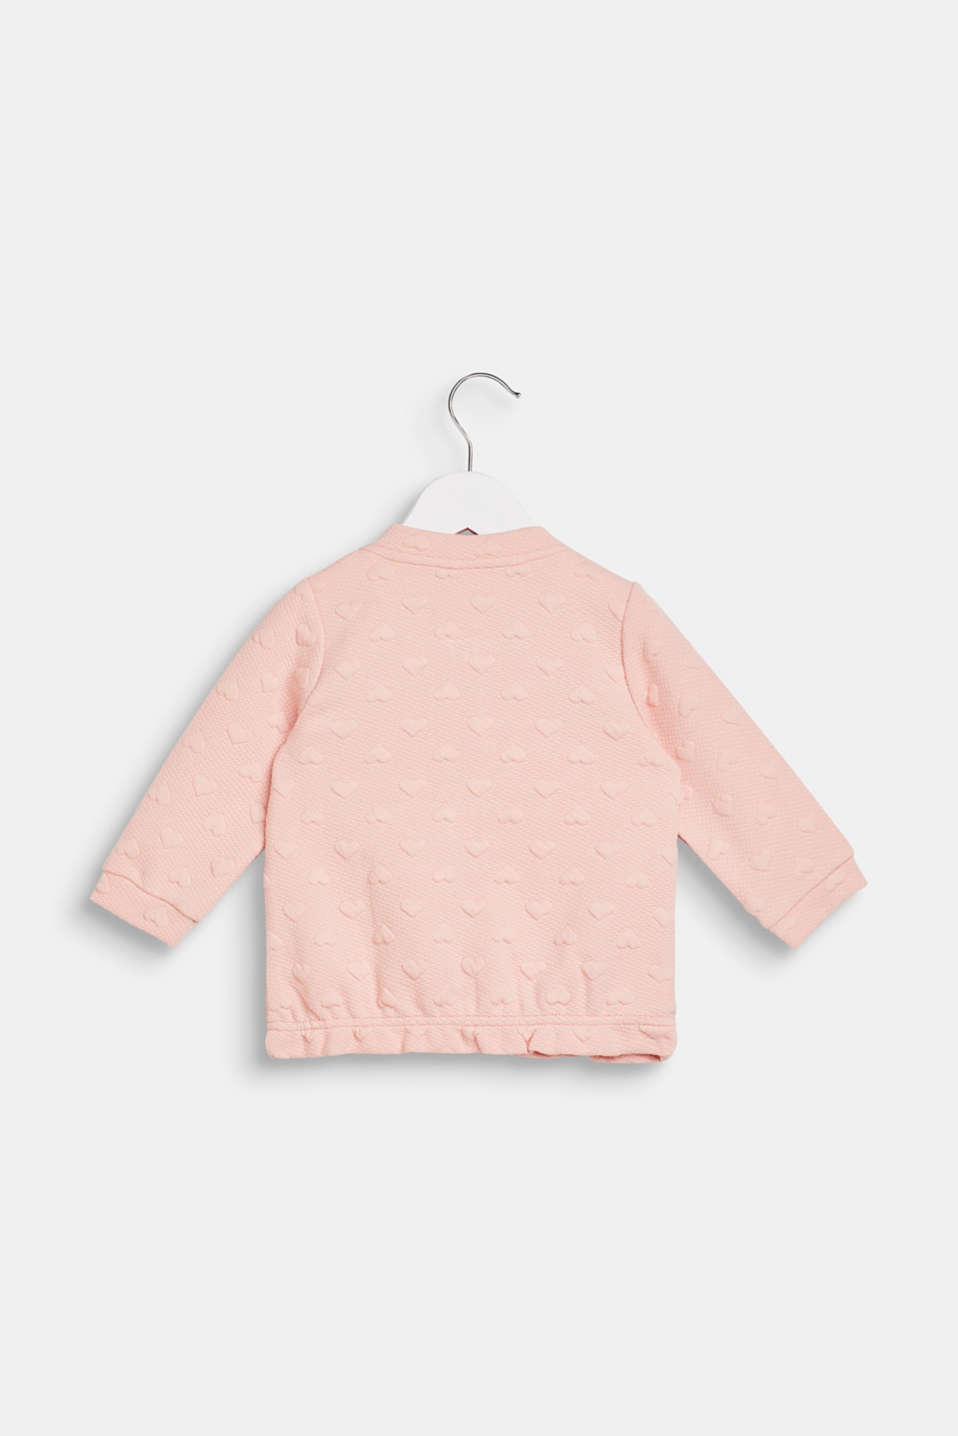 Sweatshirt fabric cardigan with a heart-shaped texture, LCLIGHT BLUSH, detail image number 1